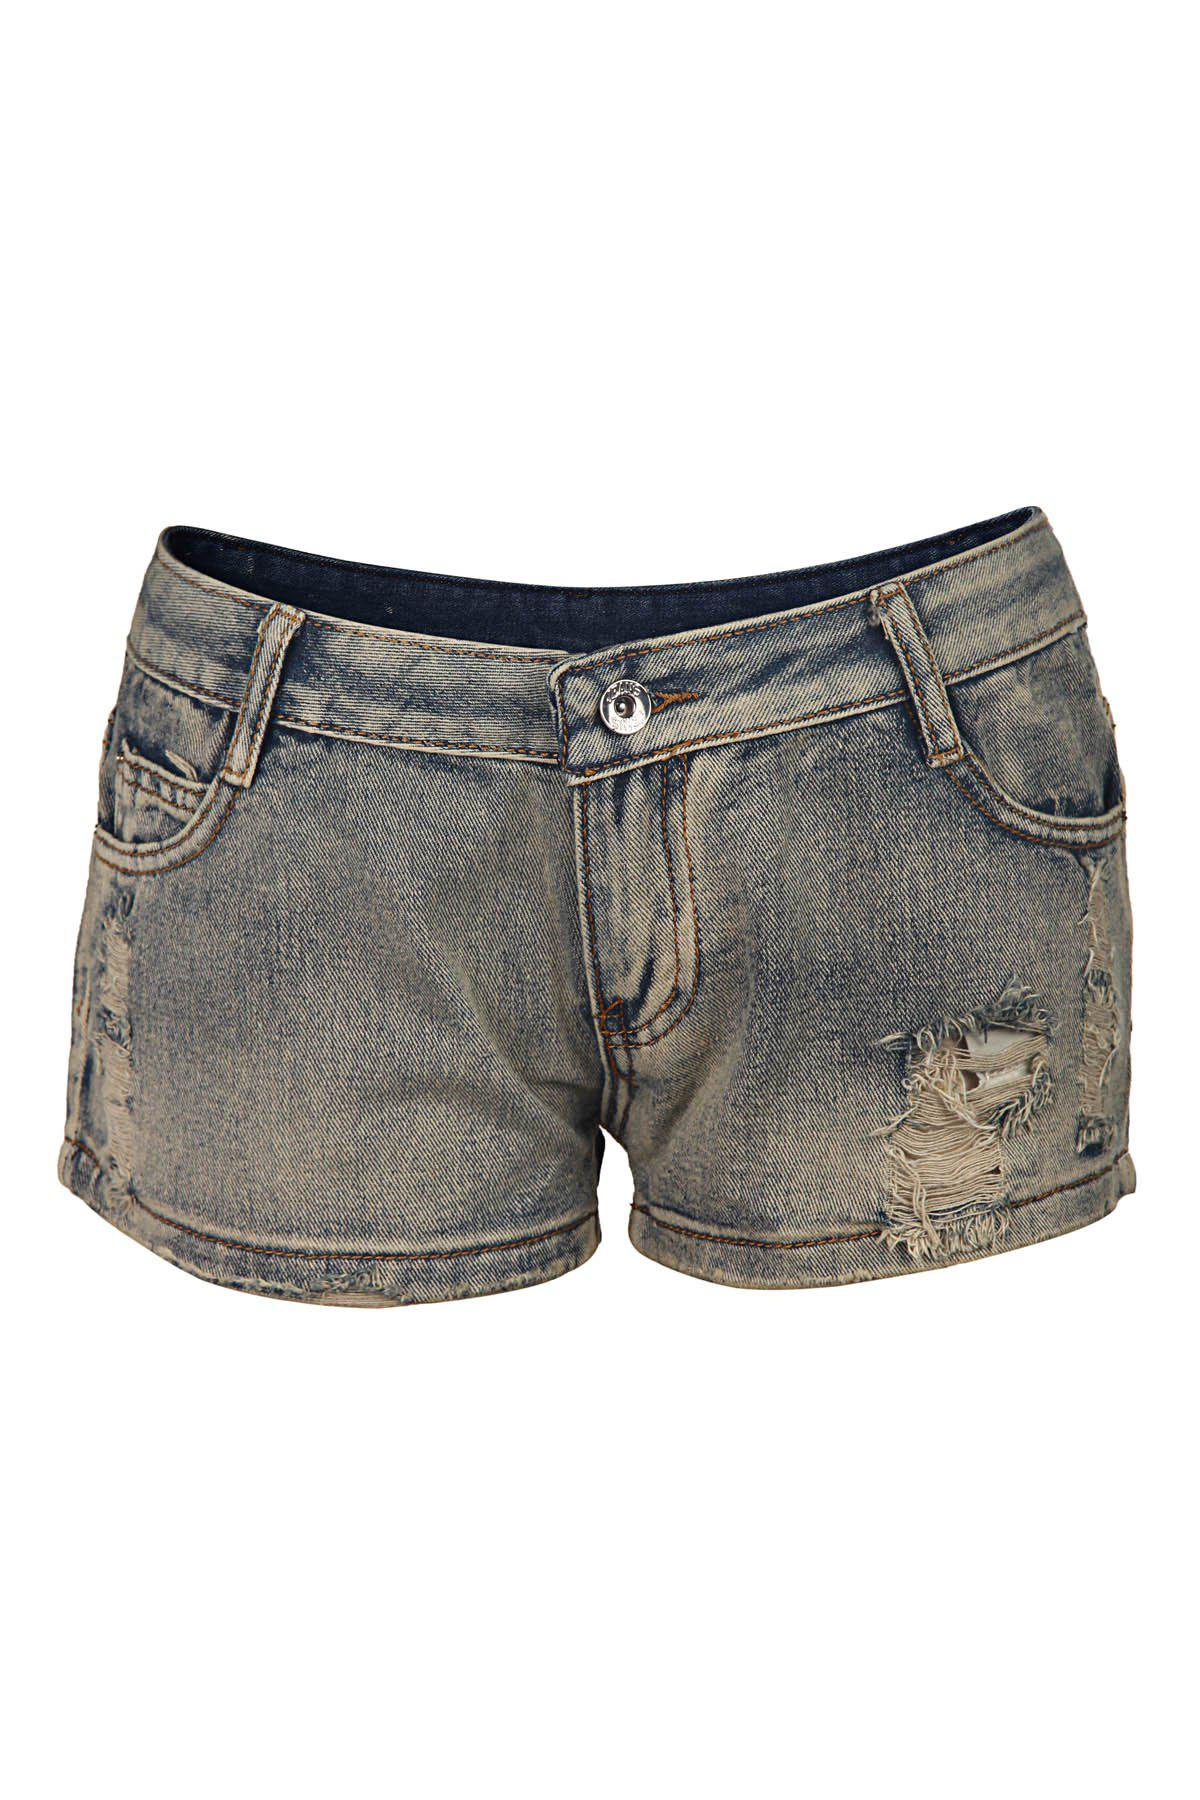 Women's Stylish Destroy Wash Straight-Leg Denim Shorts